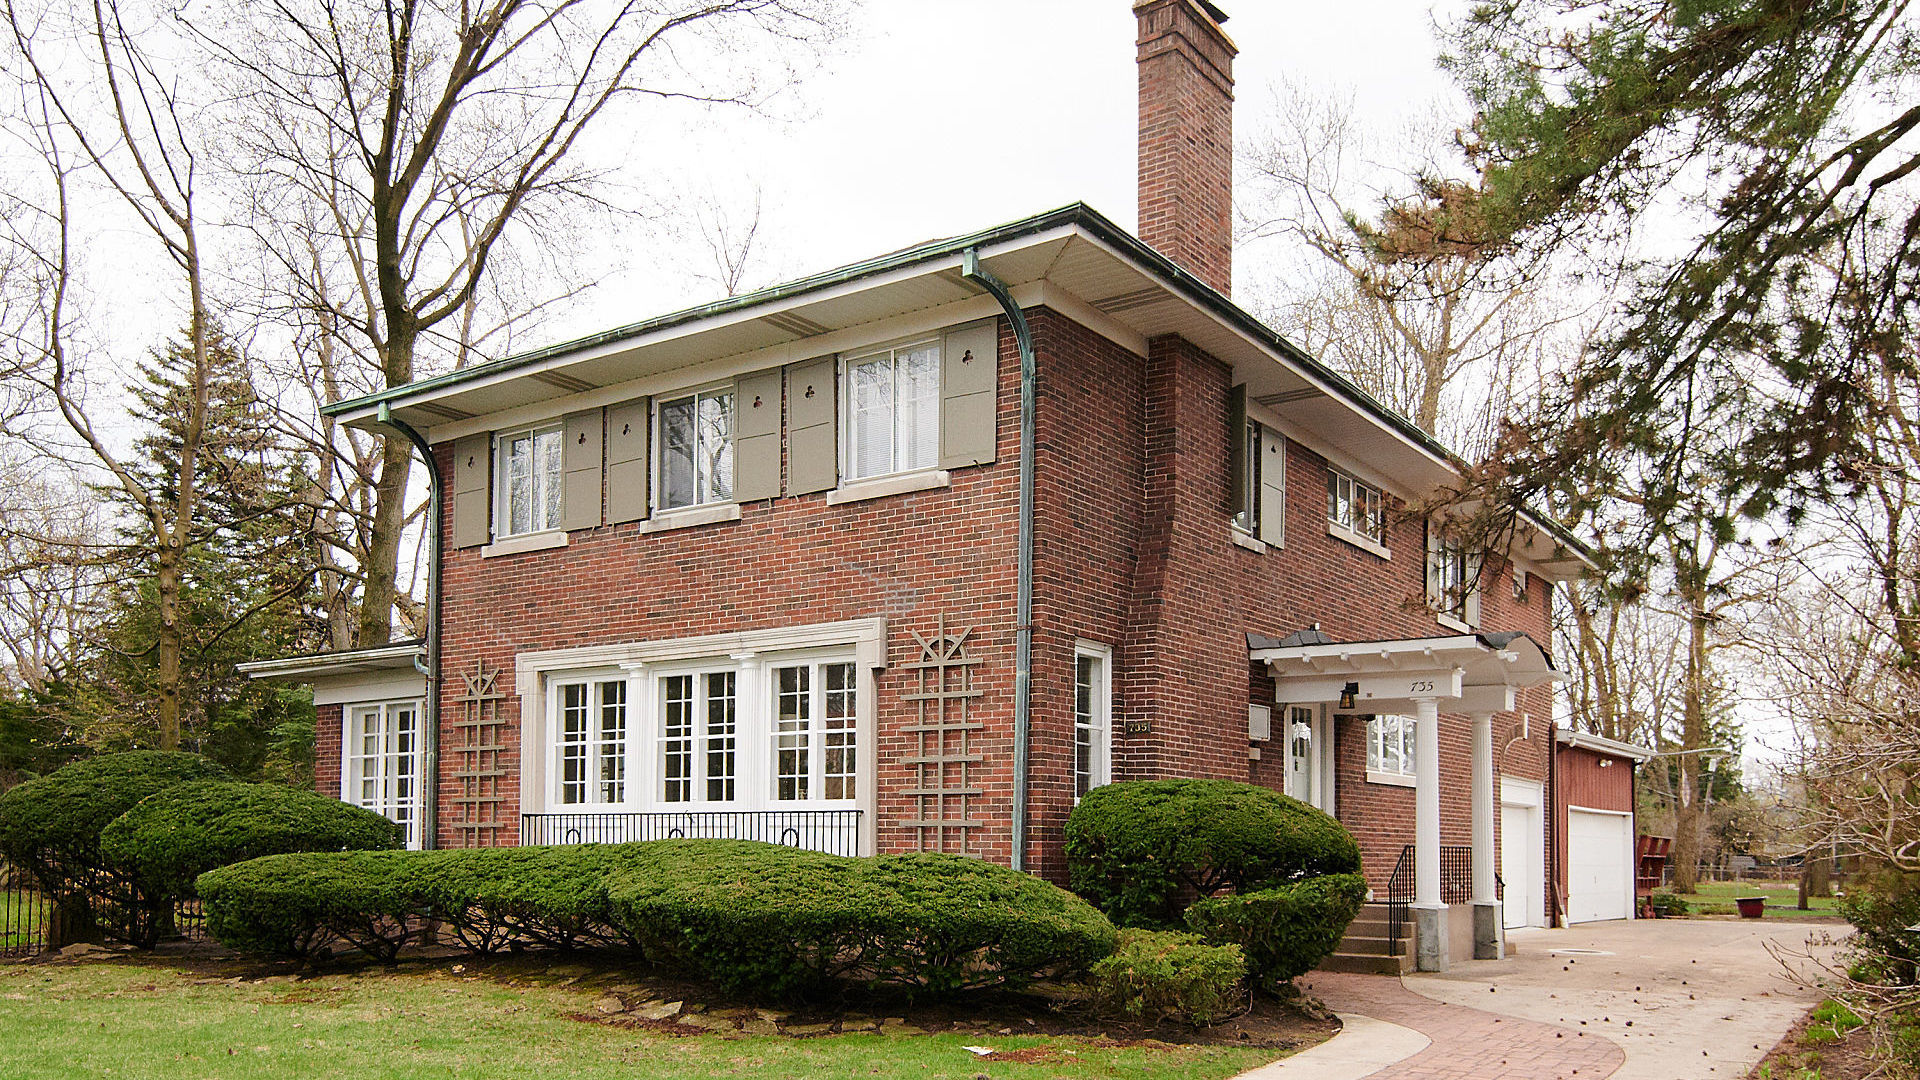 Property for sale at 735 Augusta Street, OAK PARK,  Il 60302